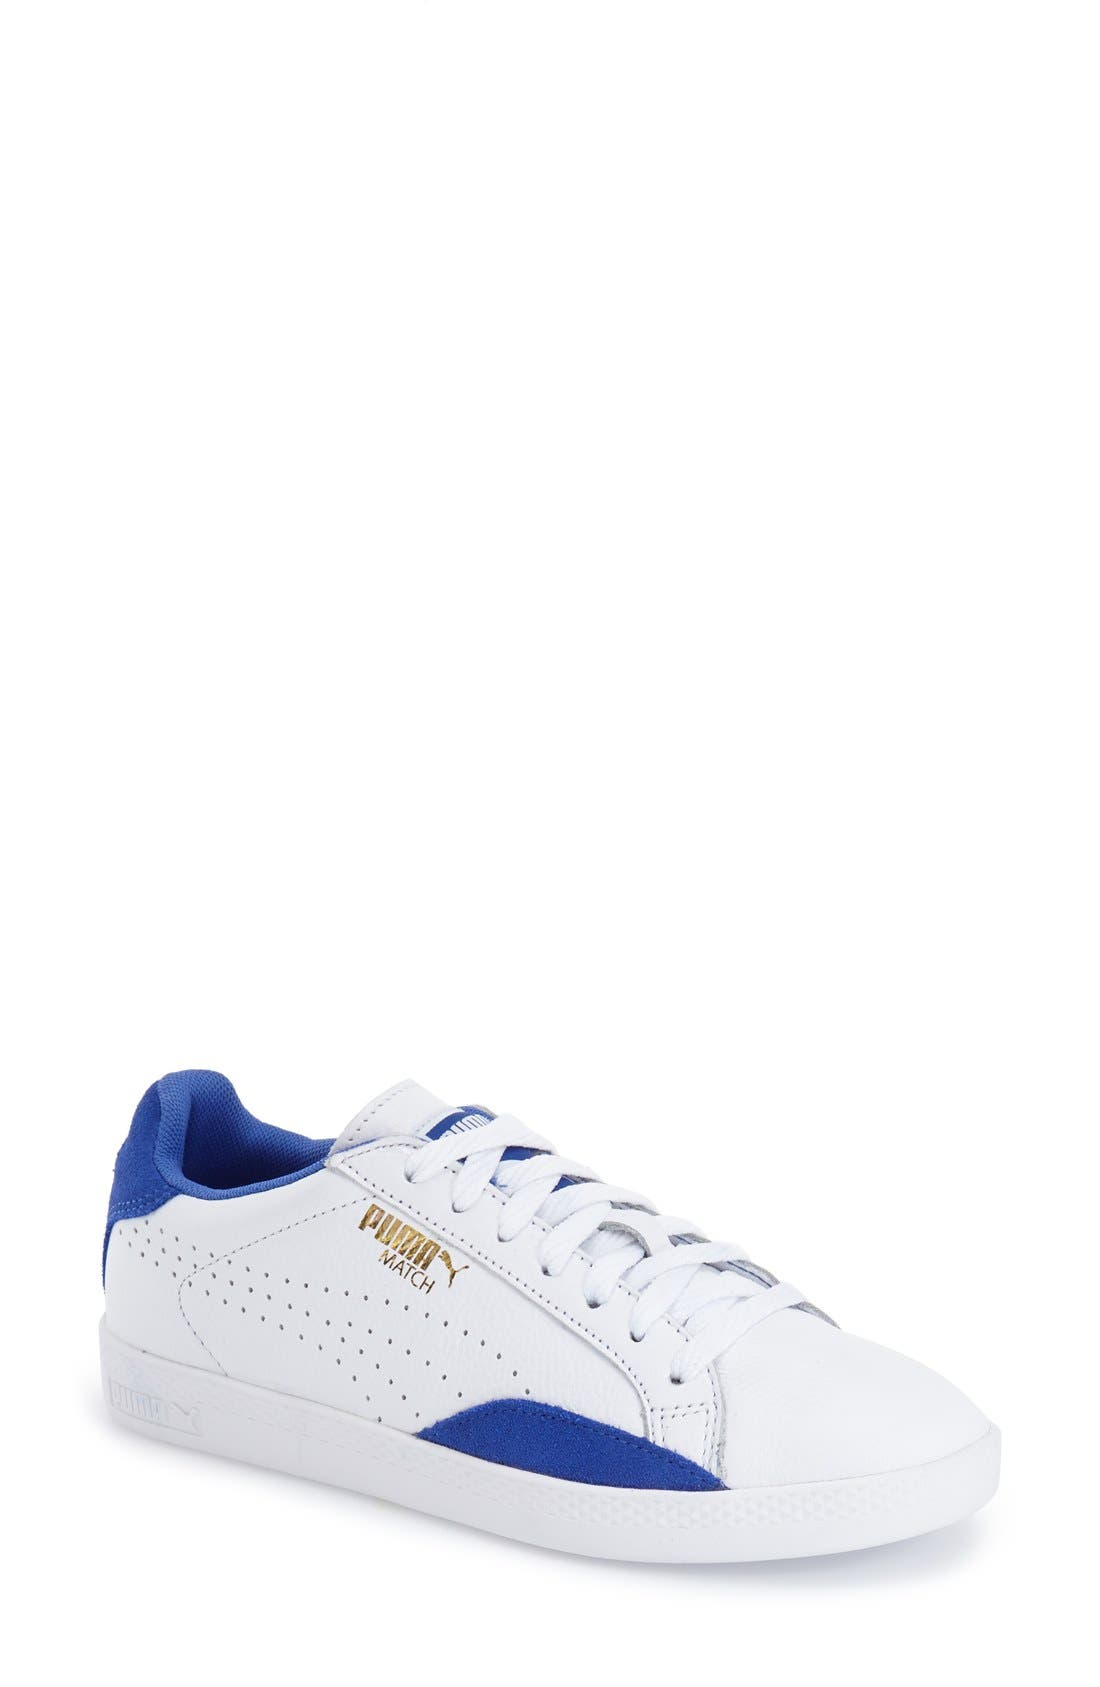 Alternate Image 1 Selected - PUMA 'Match Lo - Basic Sport' Leather Sneaker (Women)